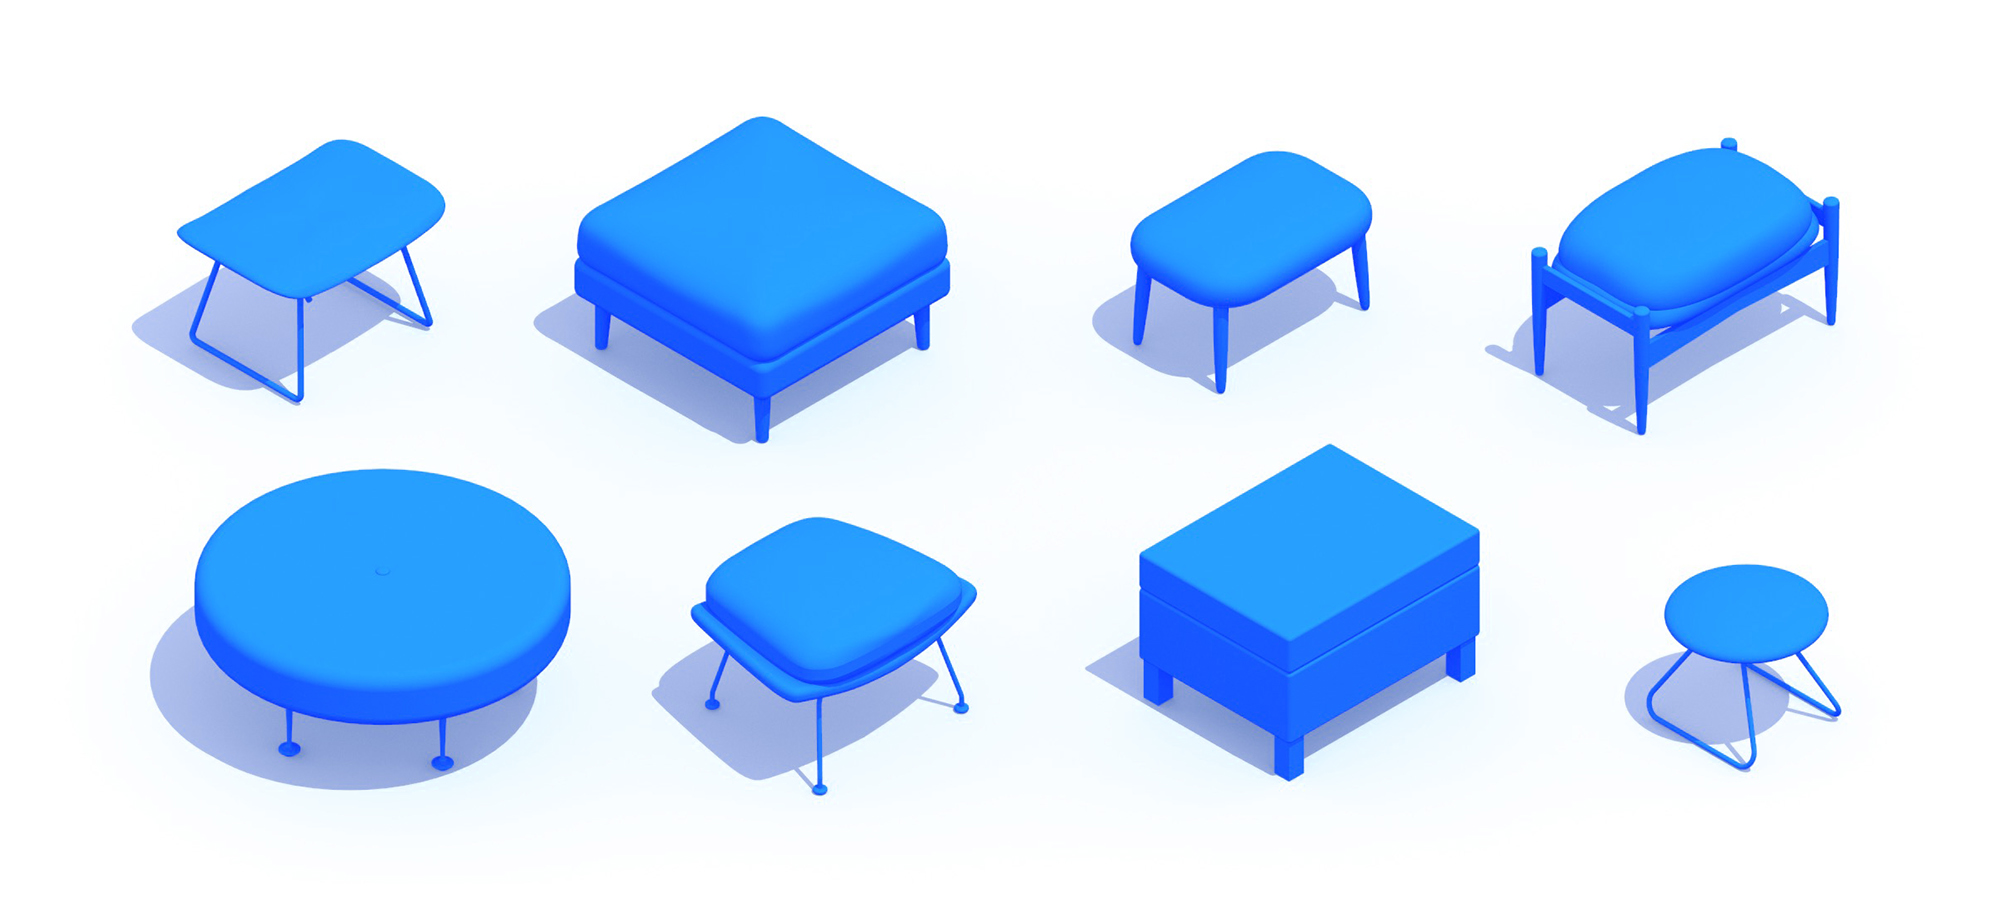 3D perspective of a collection of Ottomans and Footstools showing many different sizes, styles, and designs